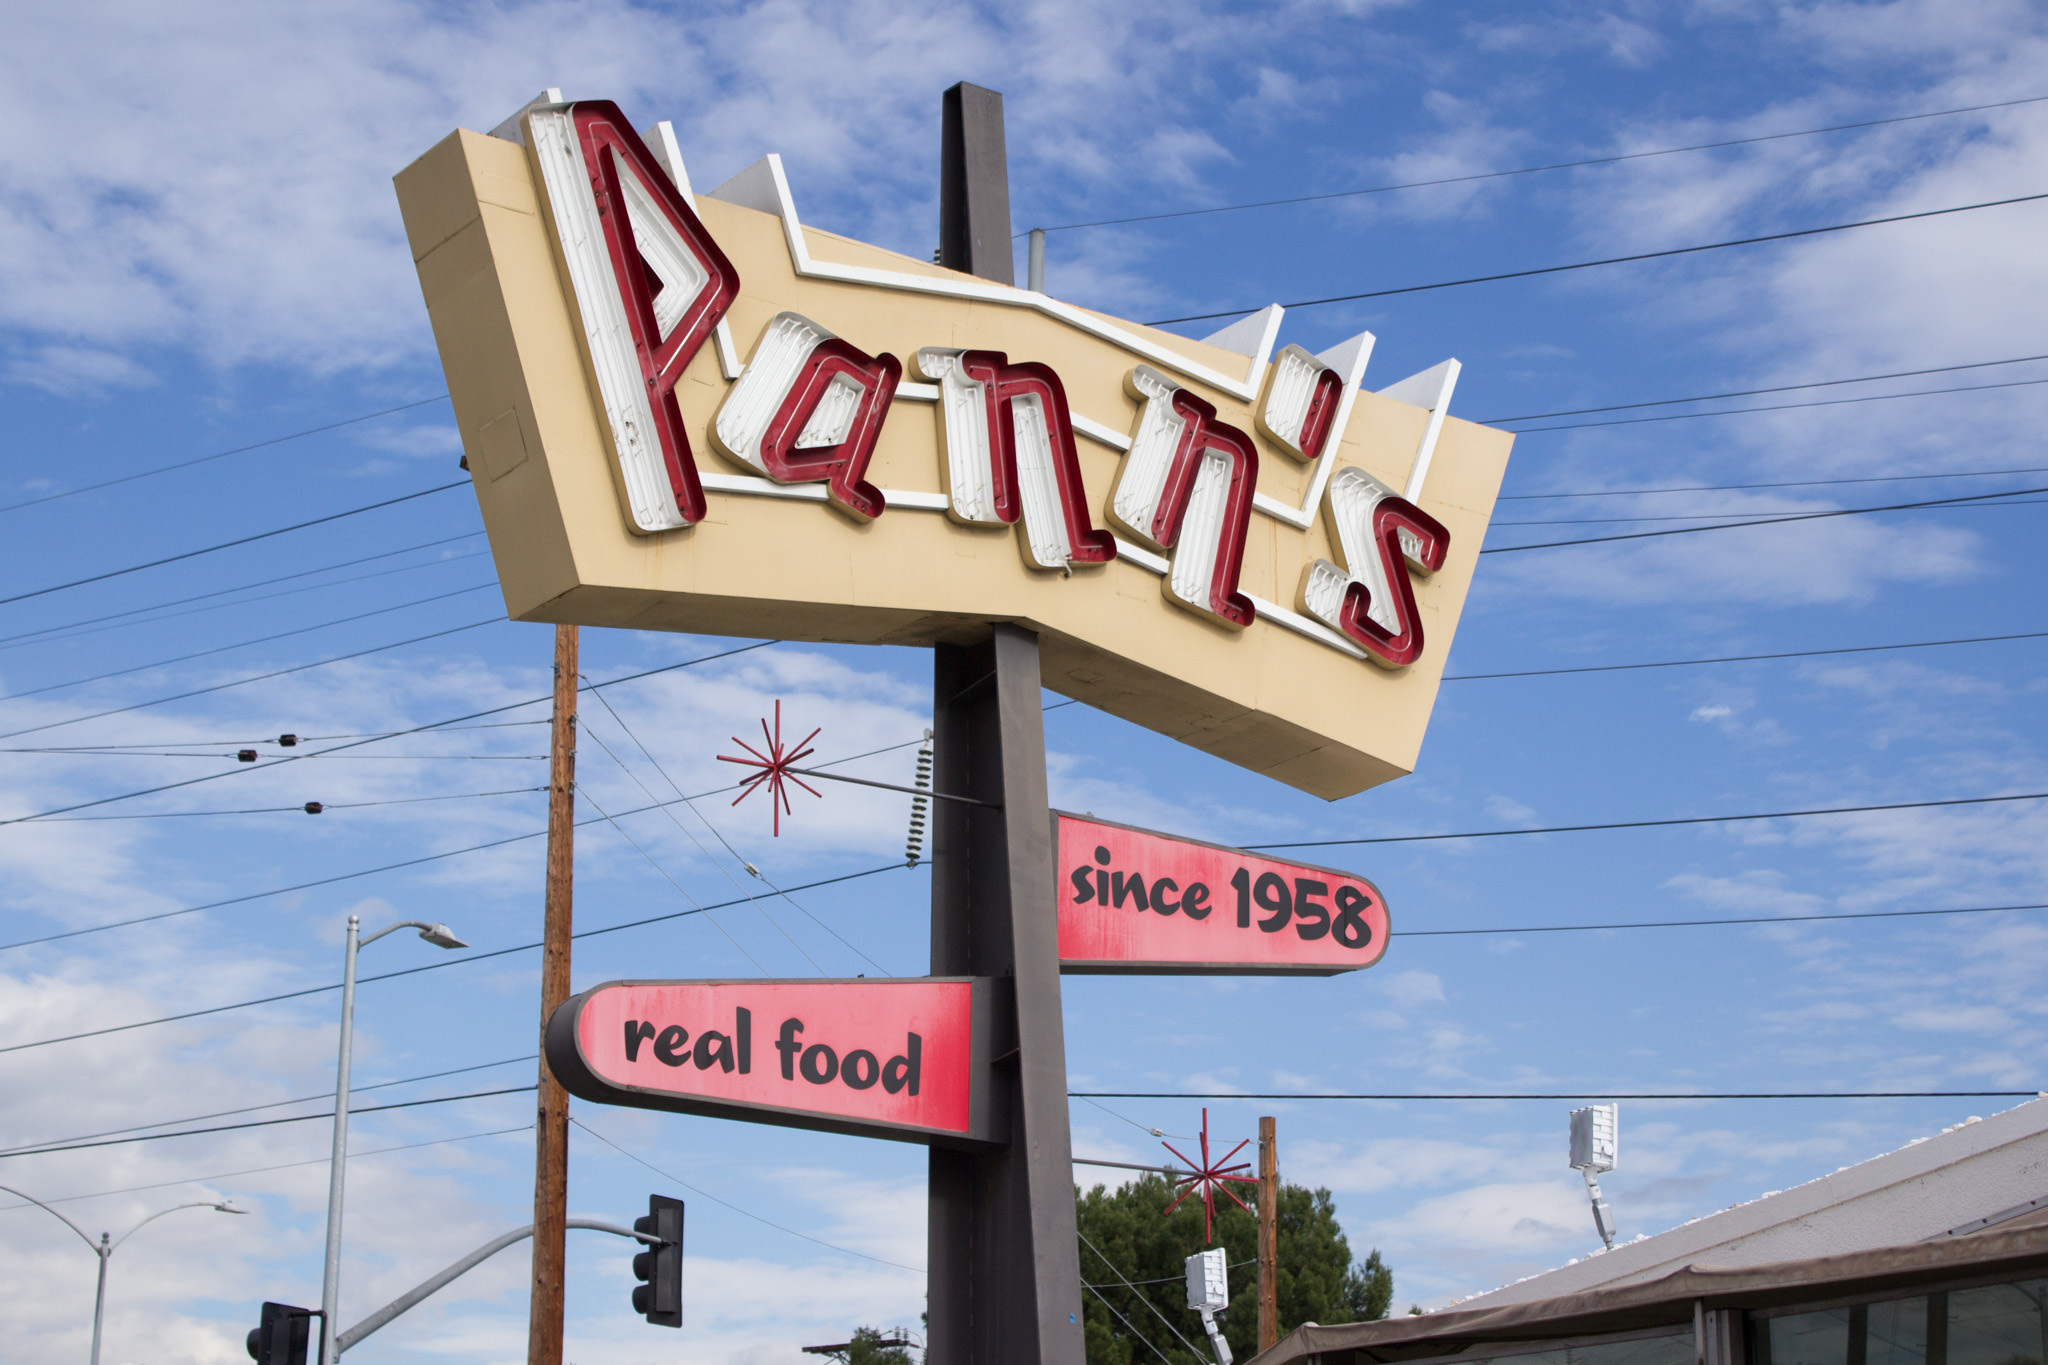 A guide to Googie architecture in Los Angeles